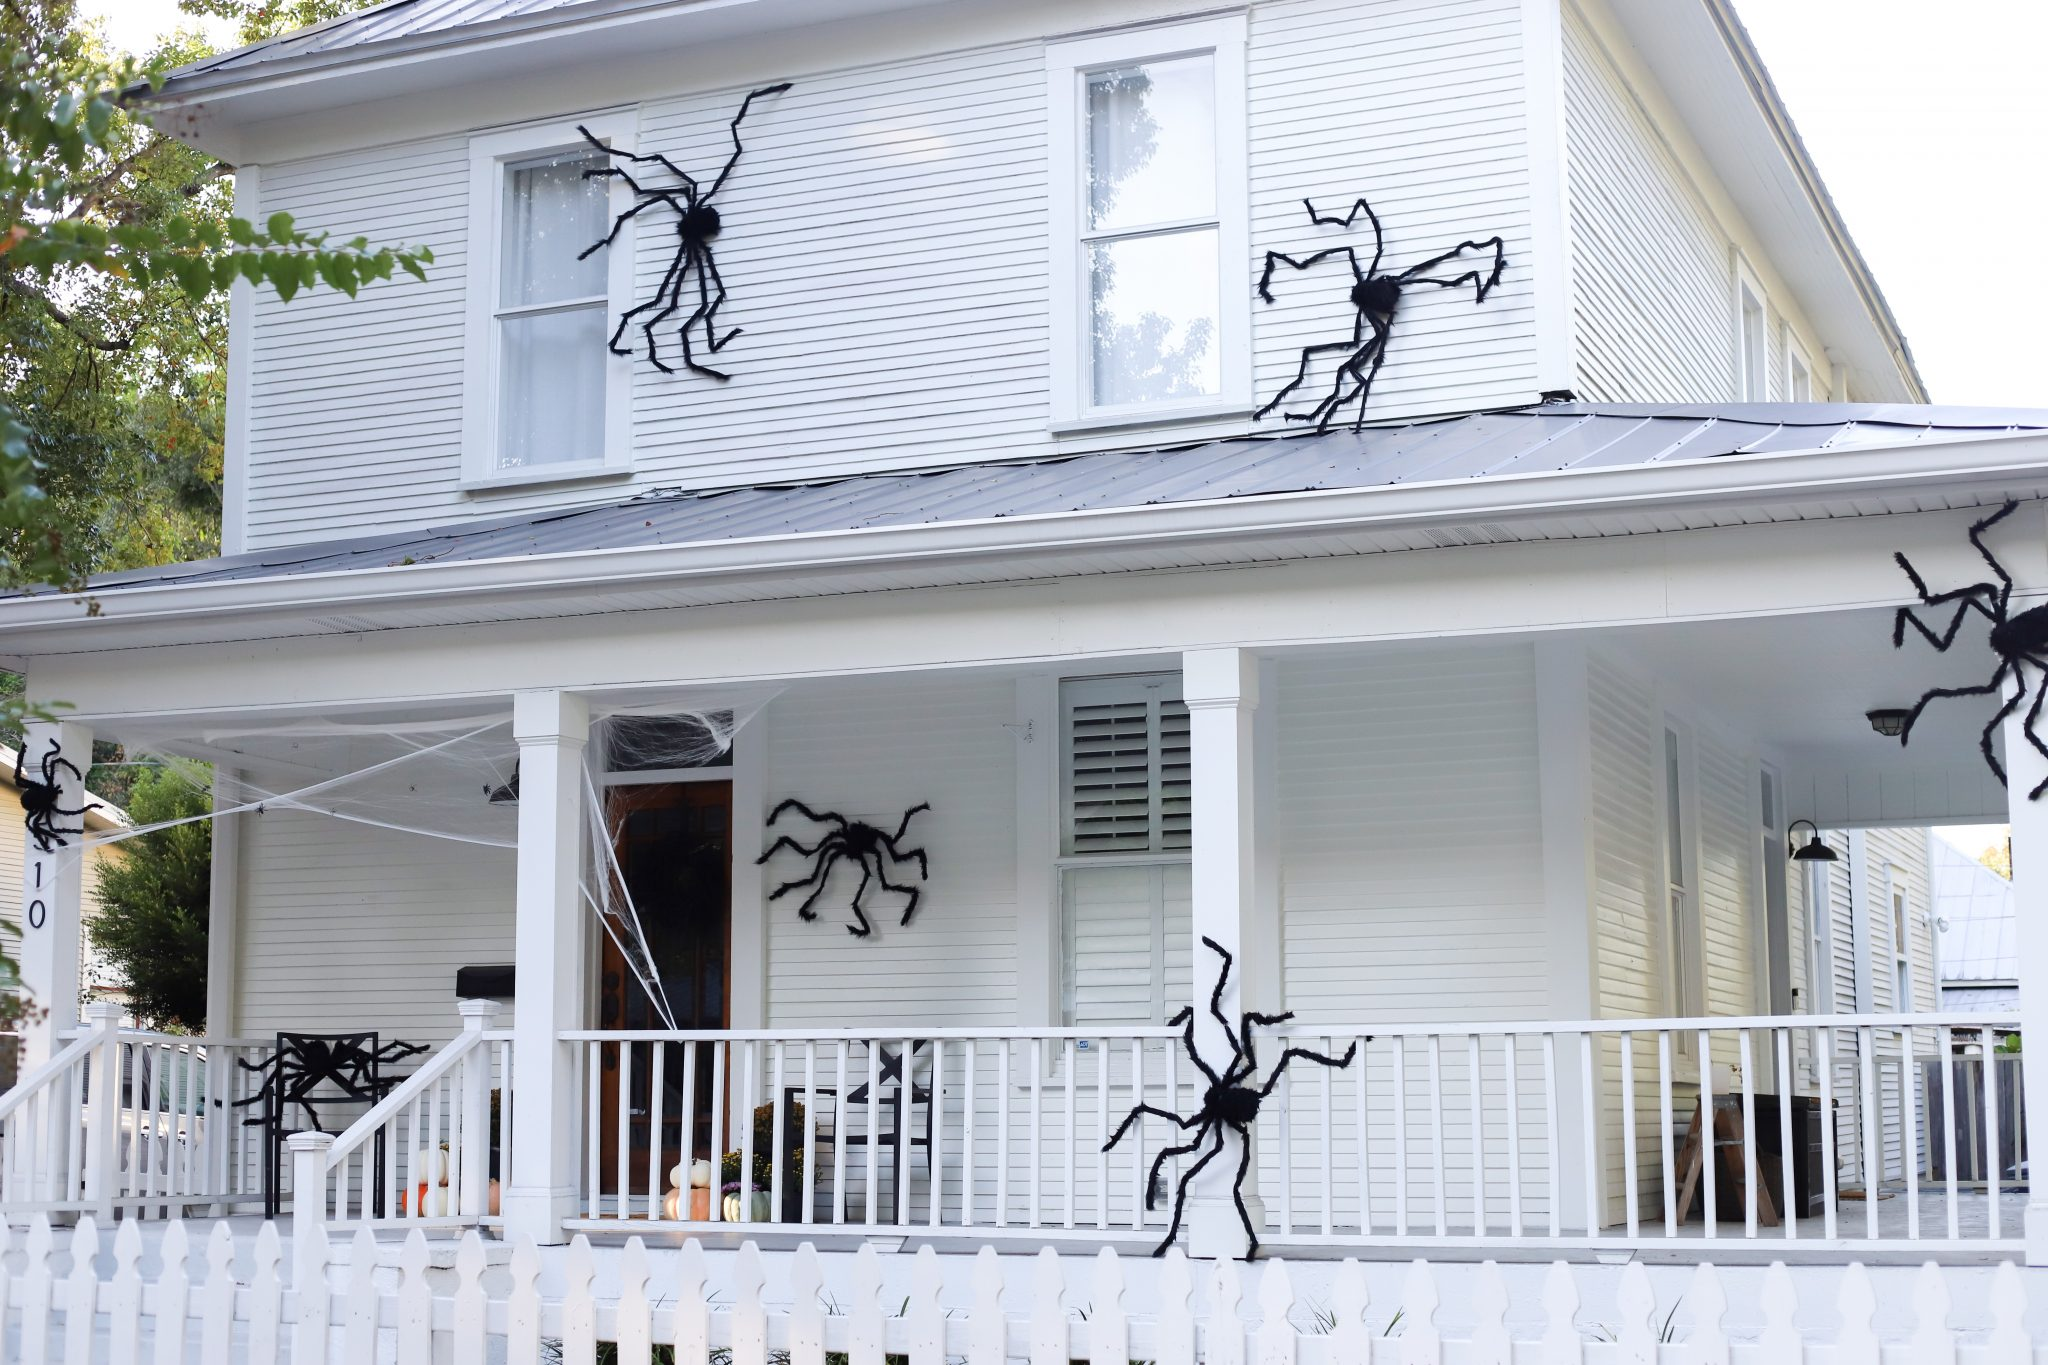 How to attached halloween spiders to the house